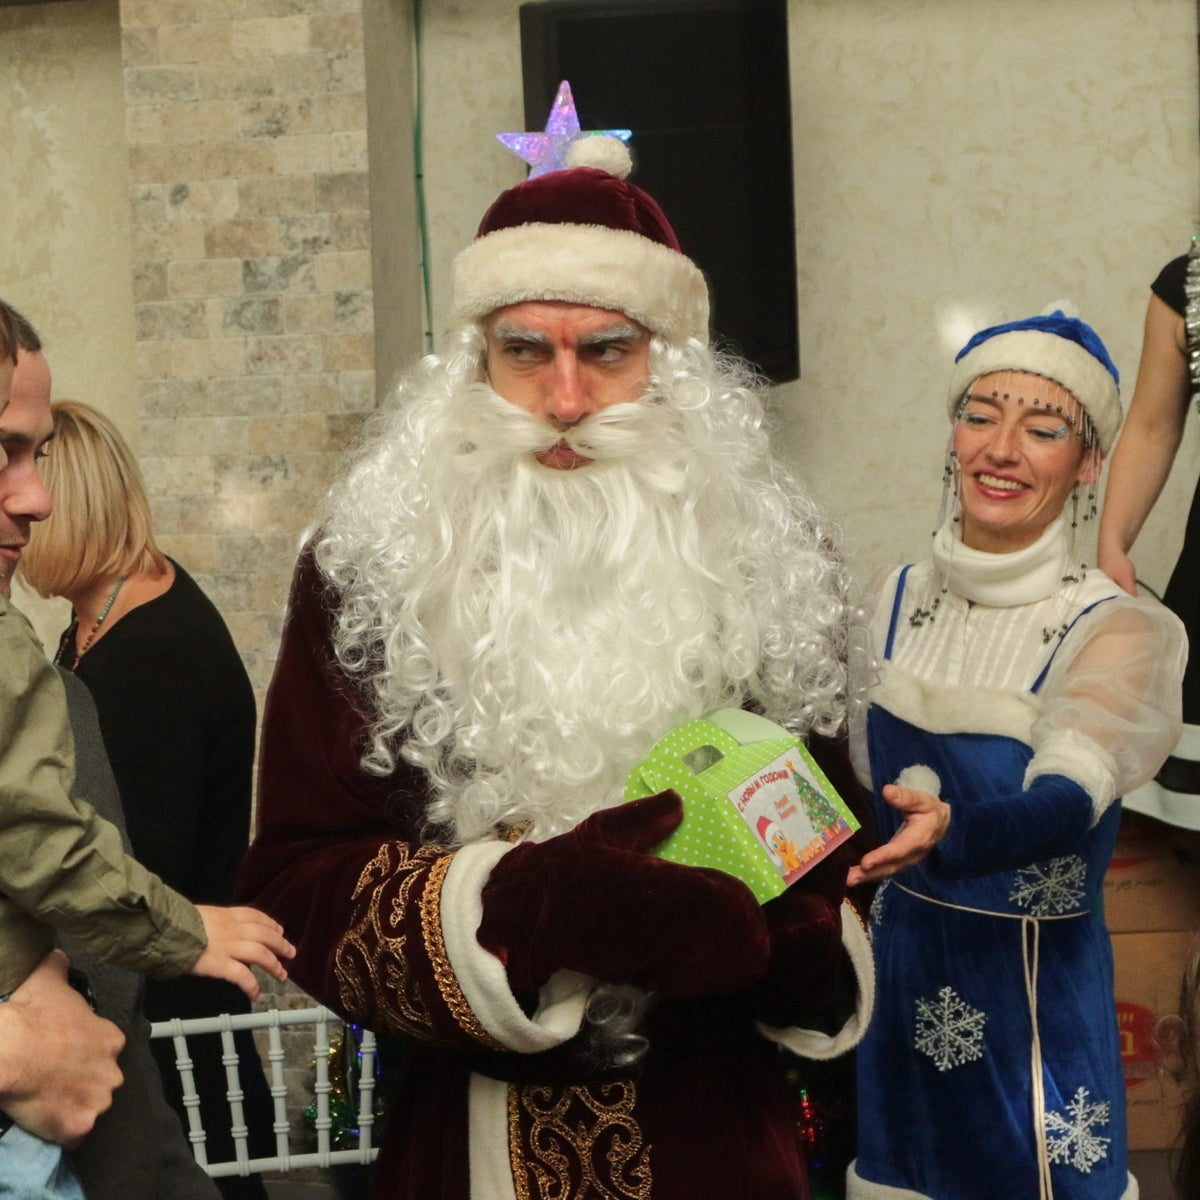 Ariel Krizhopolsk as Grandfather Frost hands out presents to children at a Novy God party in Hadera, December 24, 2016.